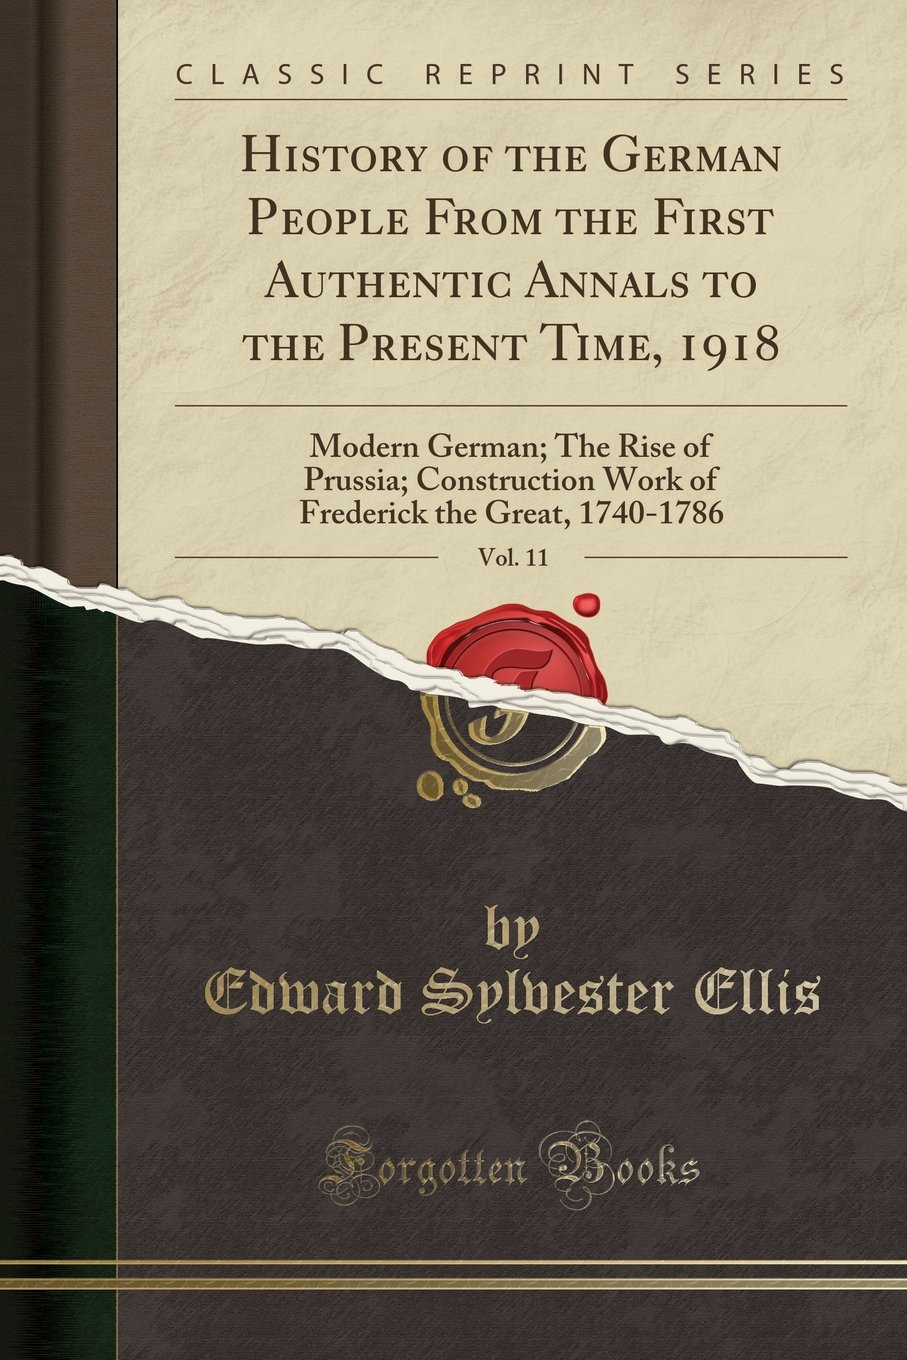 History of the German People From the First Authentic Annals to the Present Time, 1918, Vol. 11: Modern German; The Rise of Prussia; Construction Work ... the Great, 1740-1786 (Classic Reprint) PDF